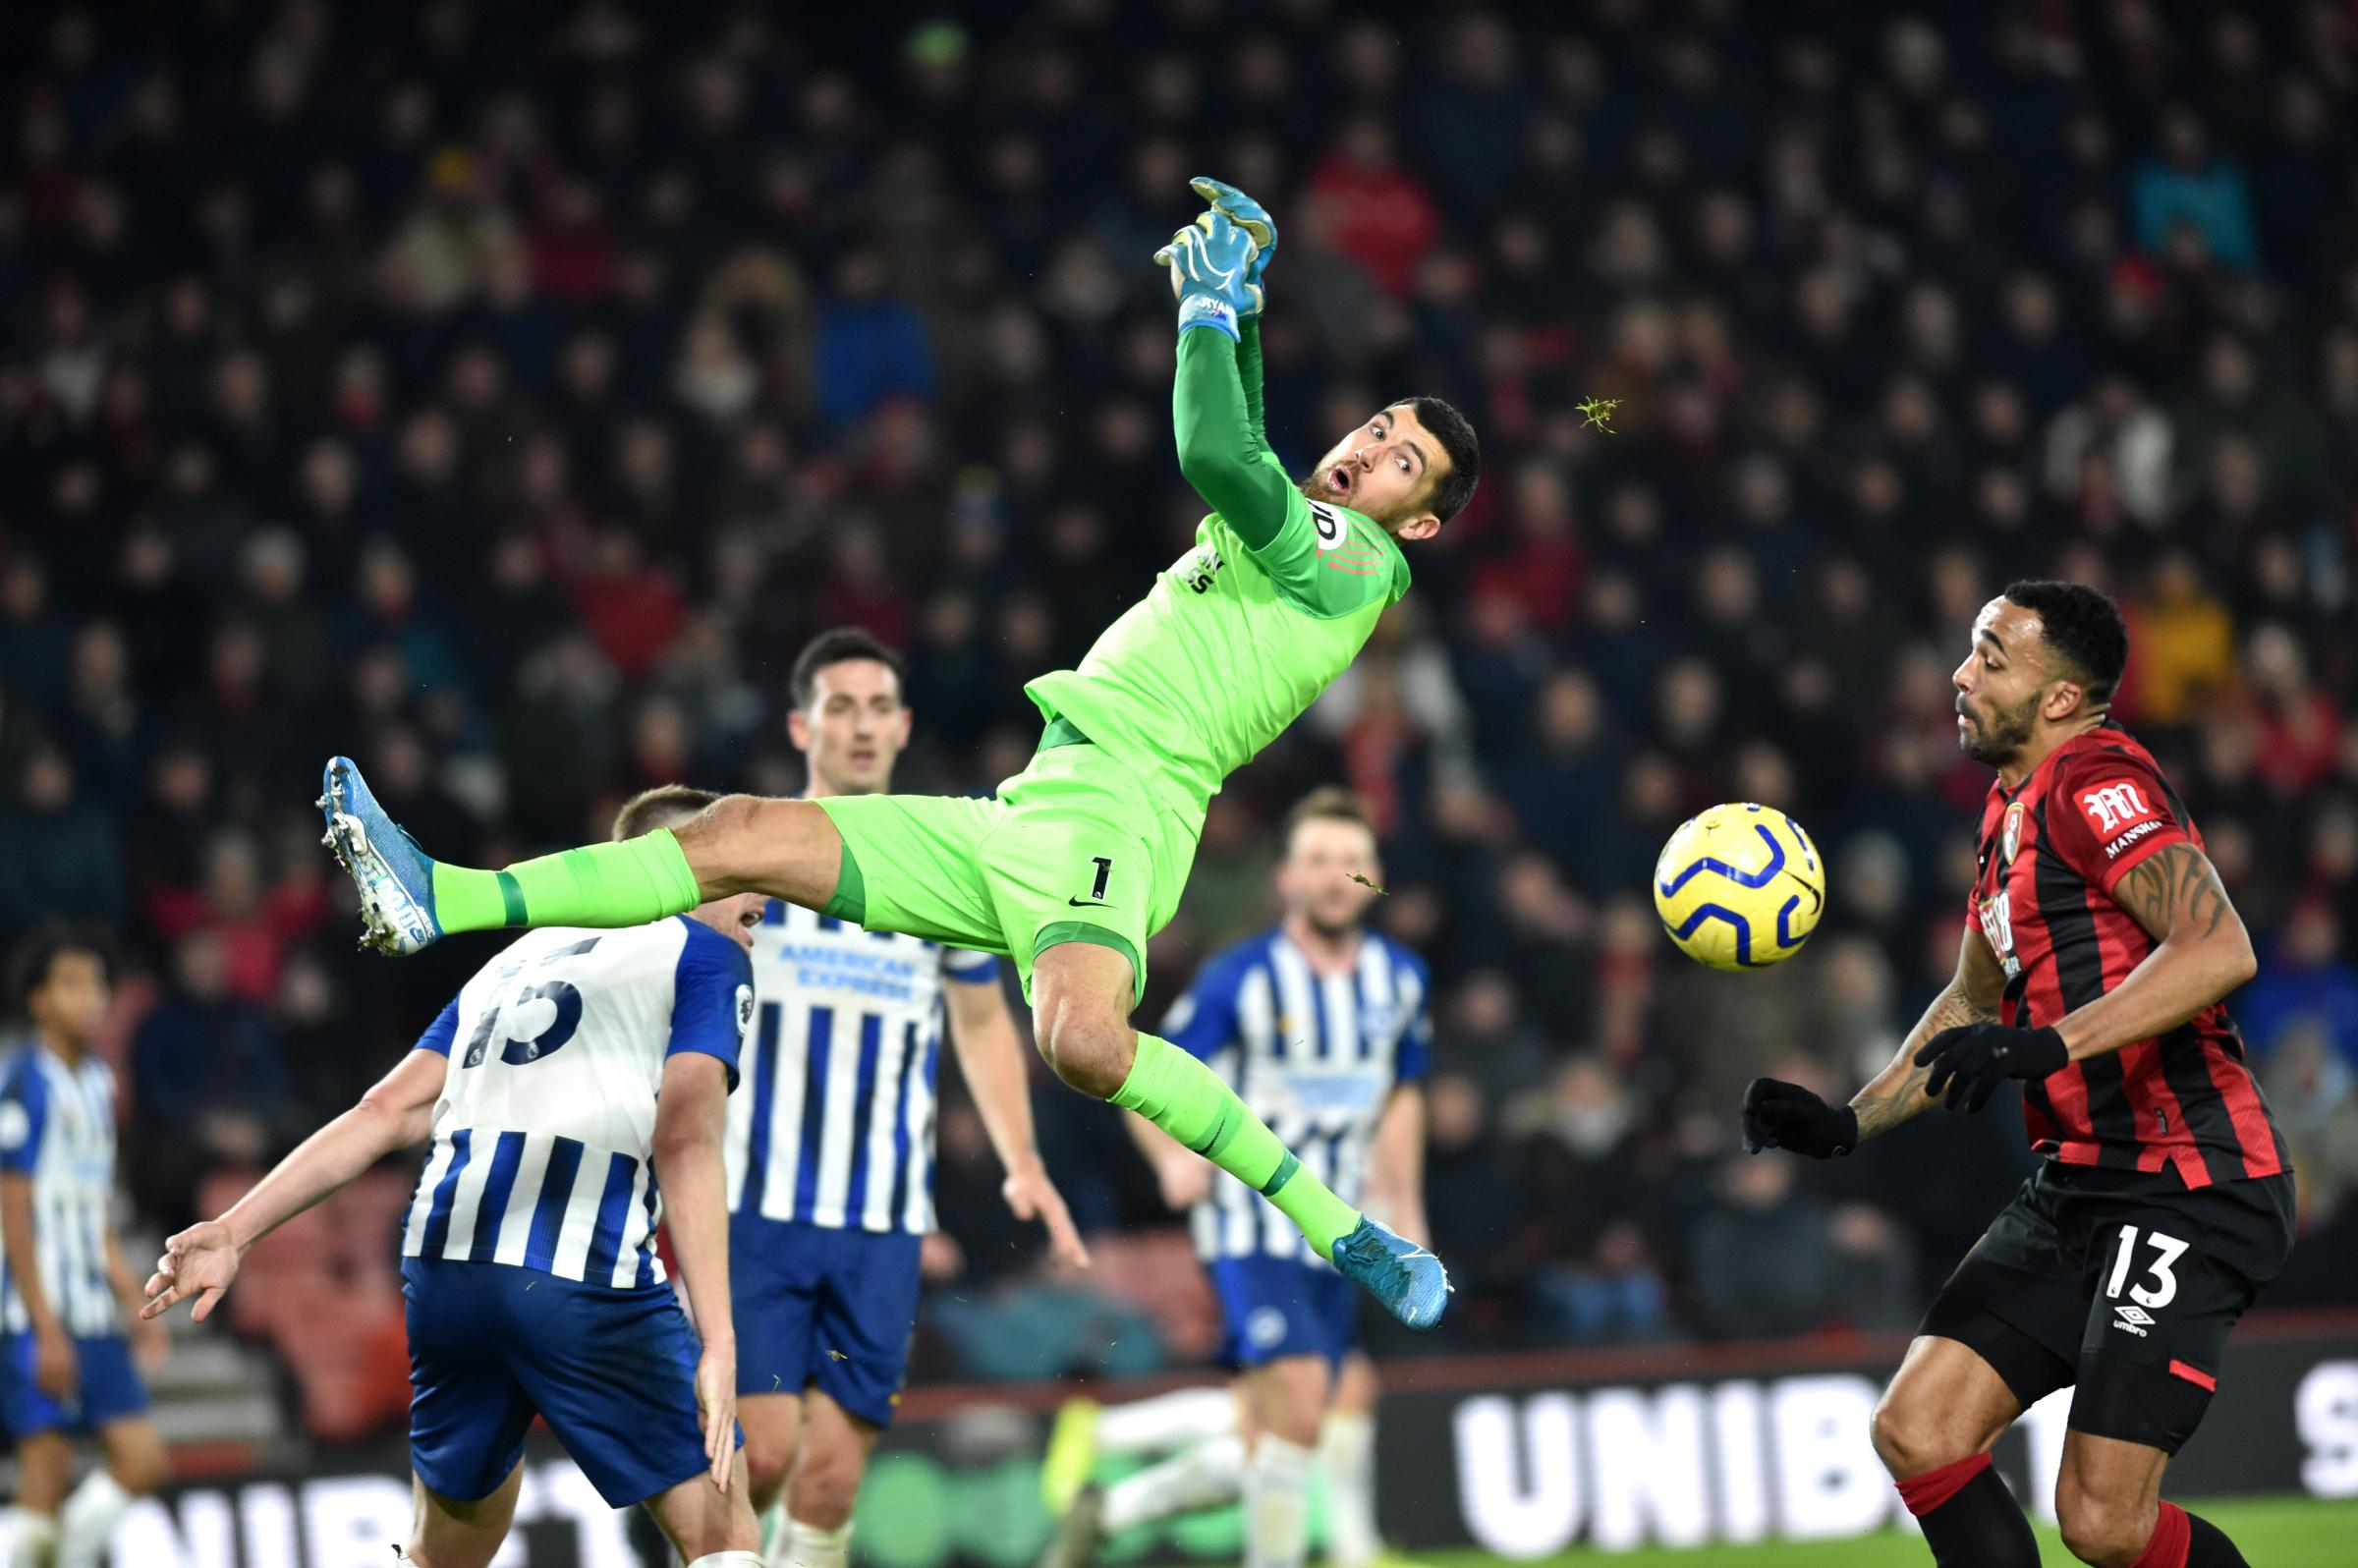 Defeat at Bournemouth increases Albion's relegation concerns